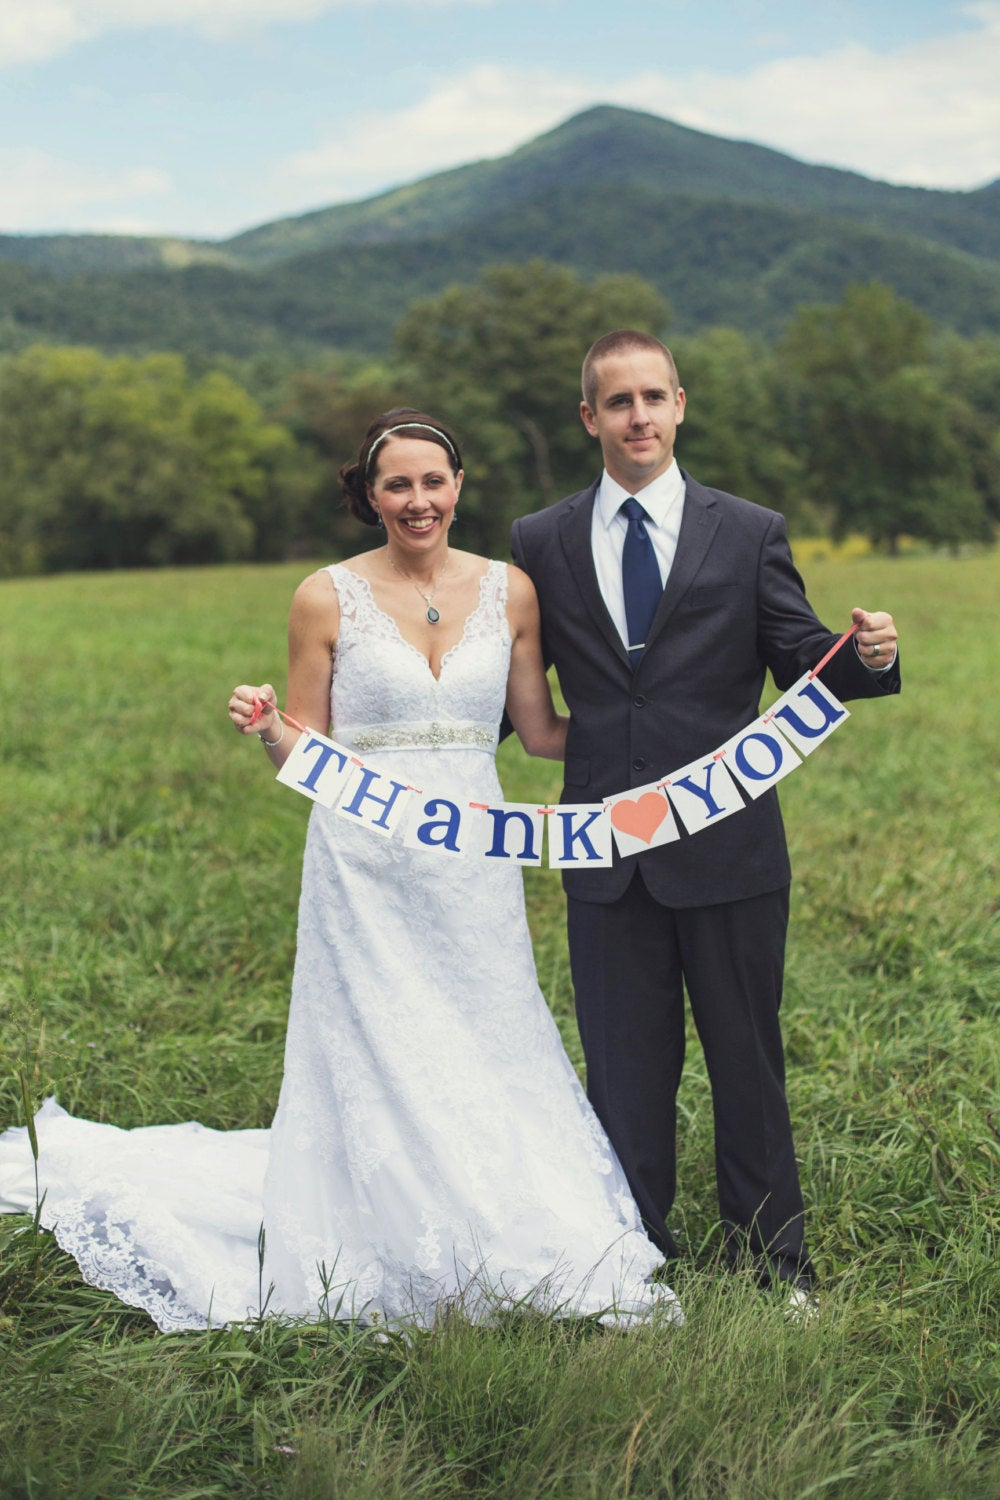 Thank You Sign/Rustic Wedding Banner Photo Prop Decoration Coral & Navy Blue